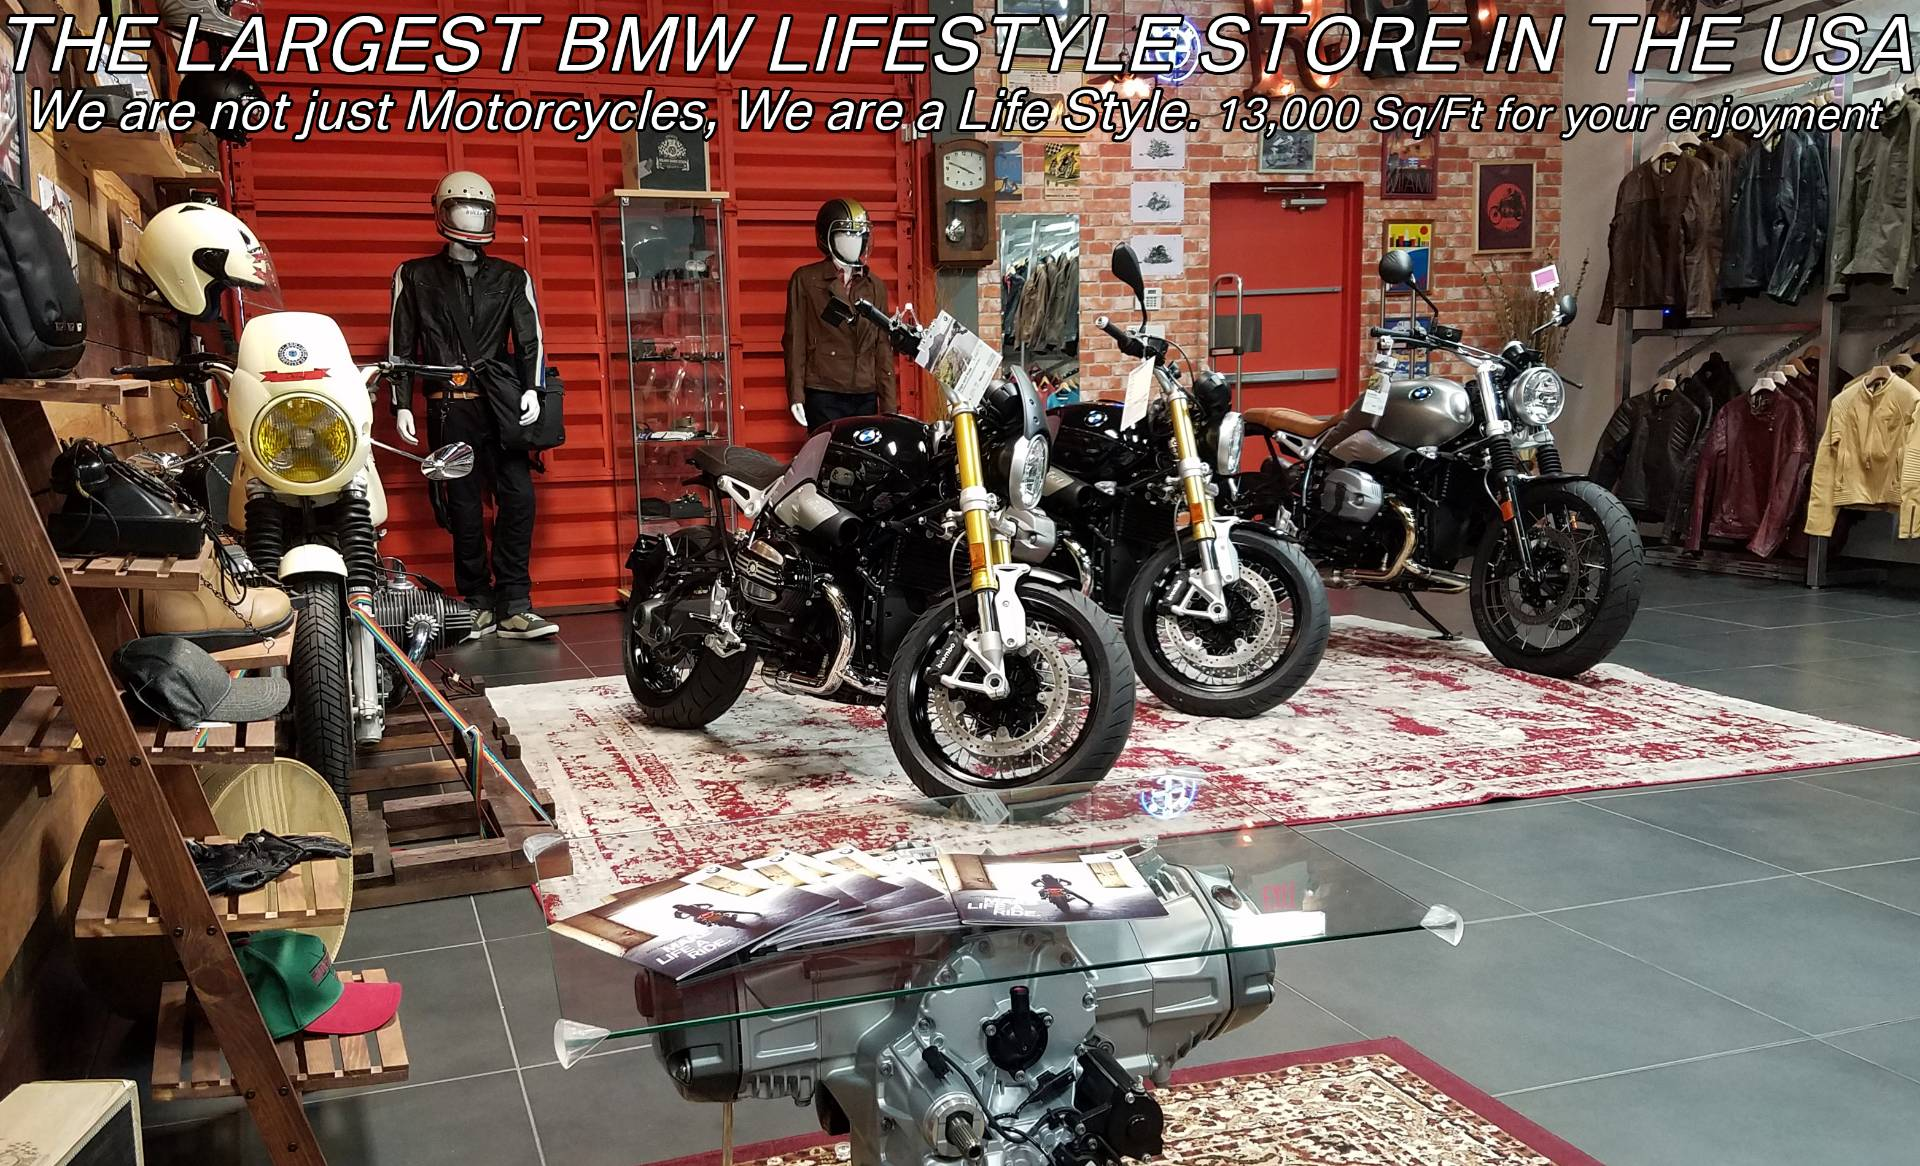 New 2019 BMW F 750 GS for sale, BMW F 750GS for sale, BMW Motorcycle F750GS, new BMW 750, Dual, BMW - Photo 23